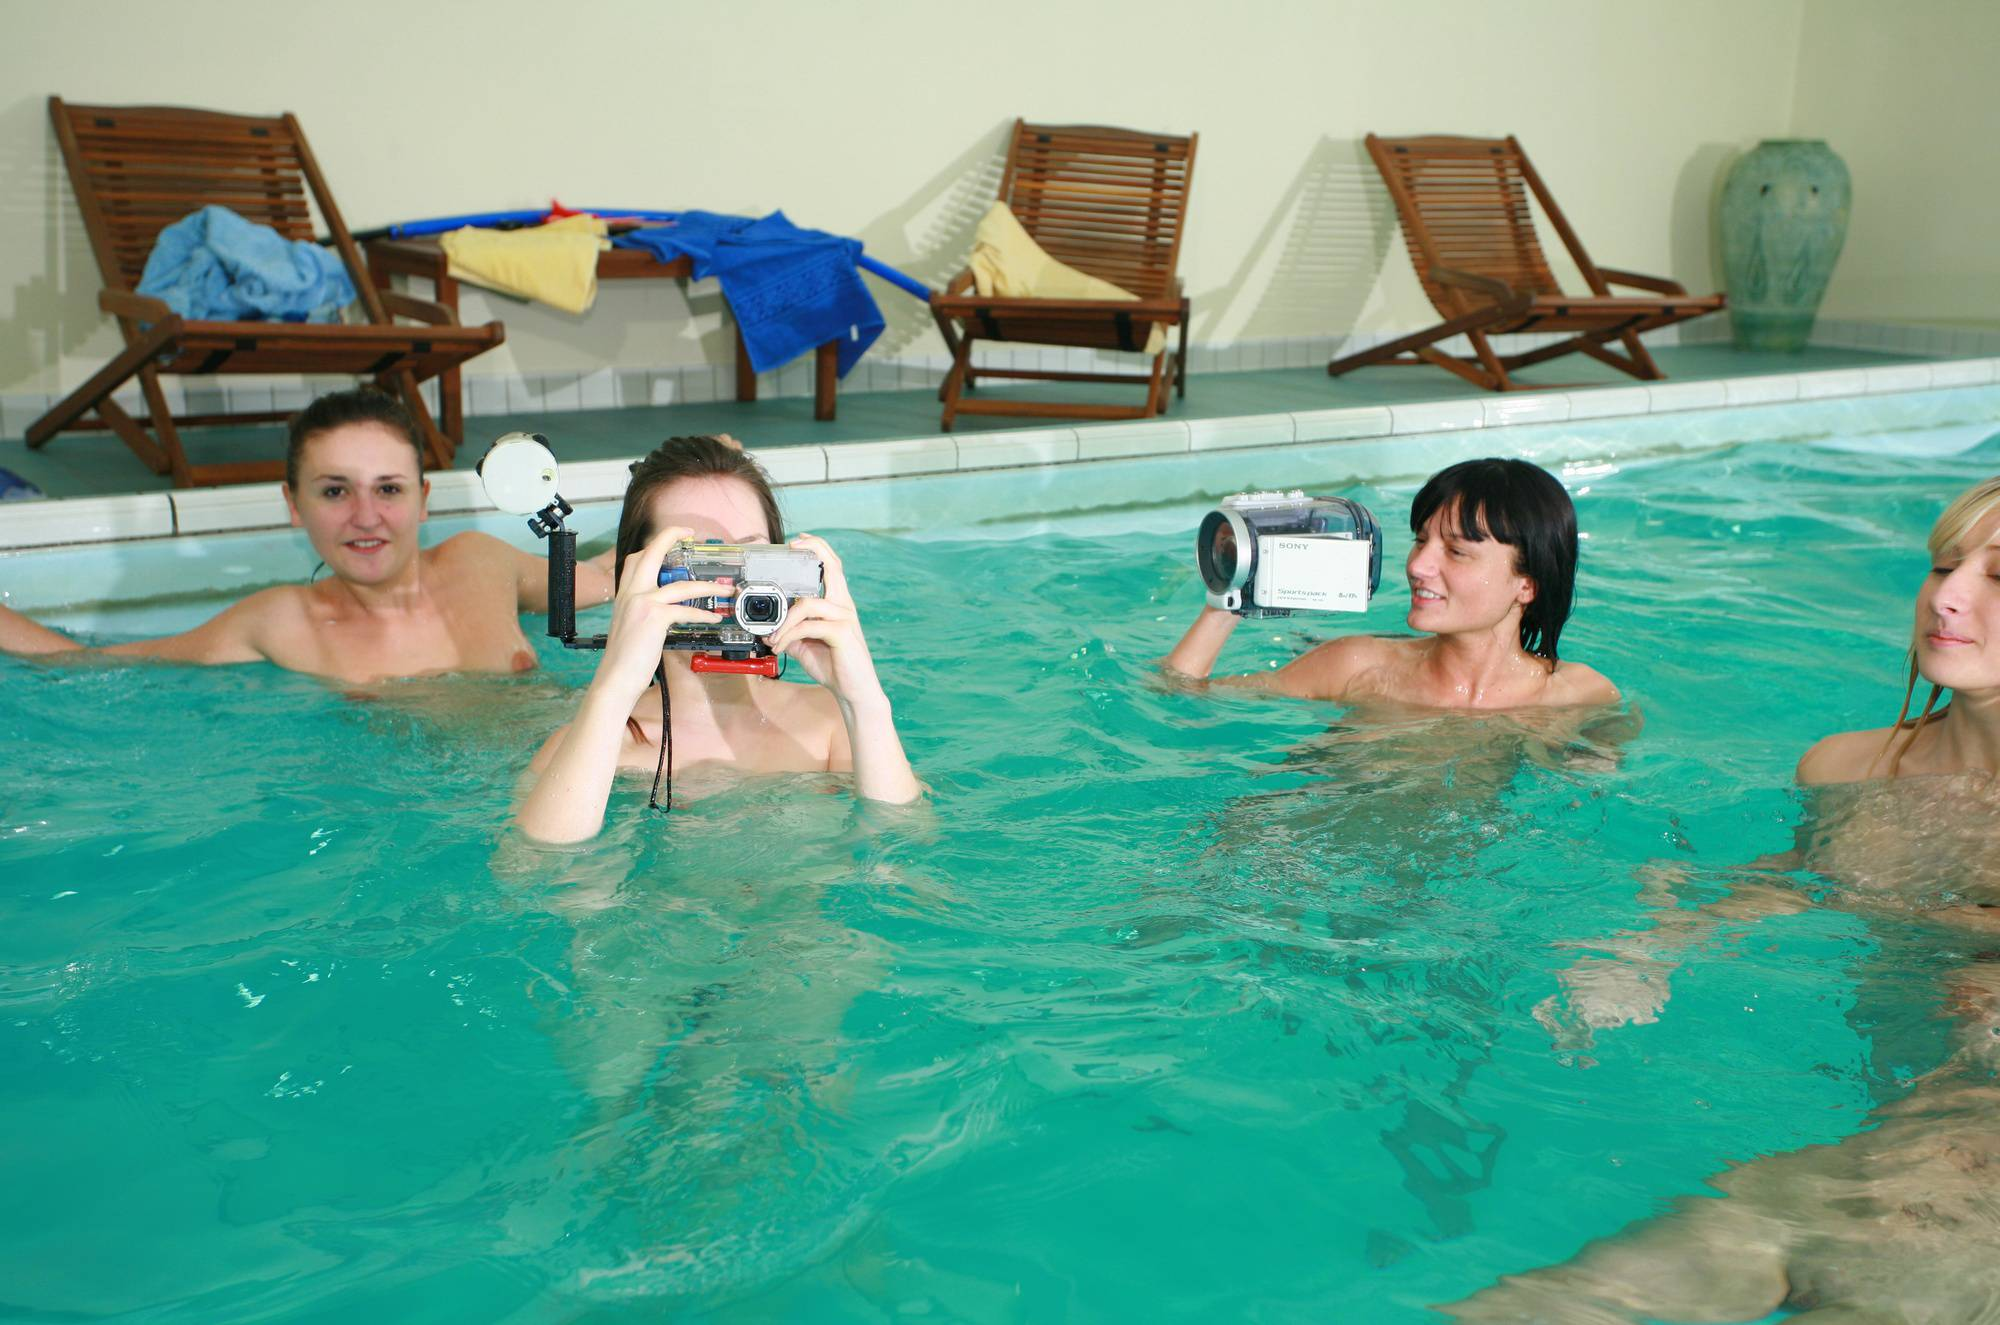 Soft Spa Pool Activities - 1